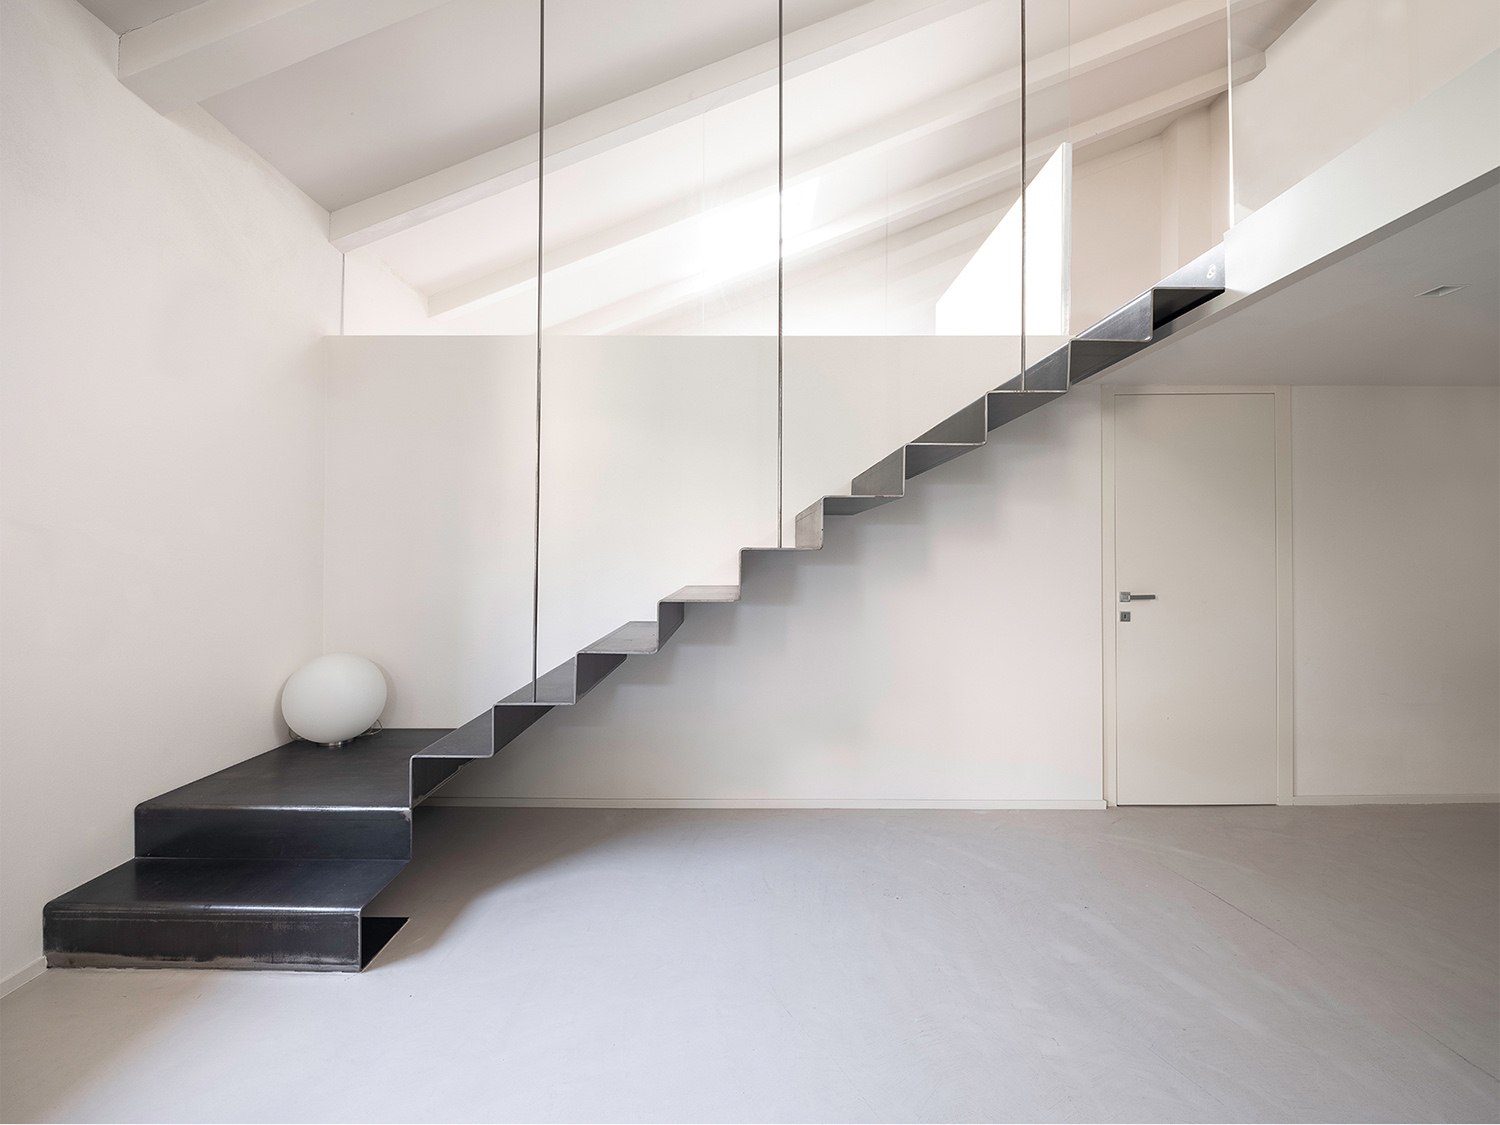 Second Floor - Folded Steel Stairs Filippo Poli Photography